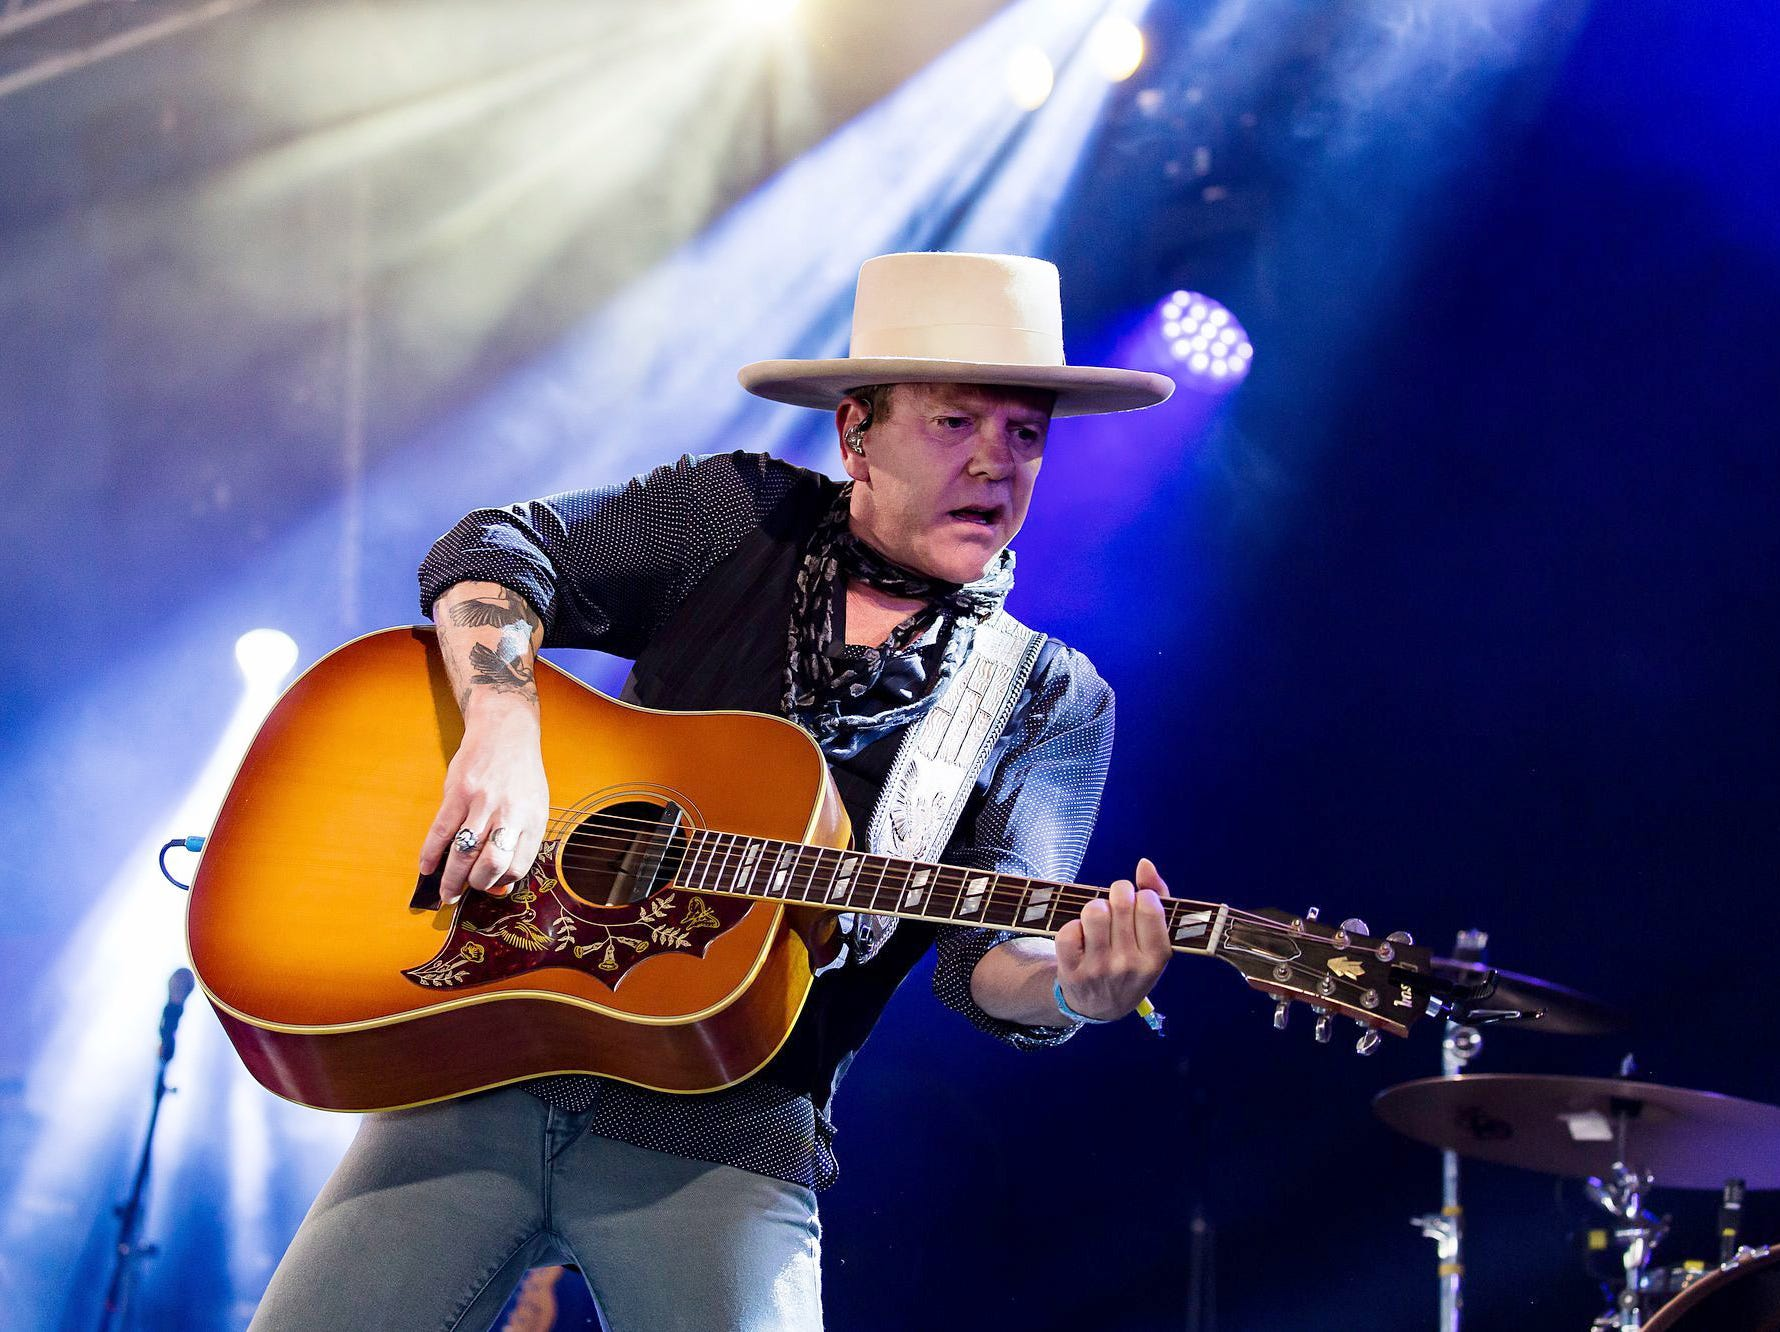 Kiefer Sutherland is scheduled to play the Budweiser Forever Country Stage at CMA Fest 2019.